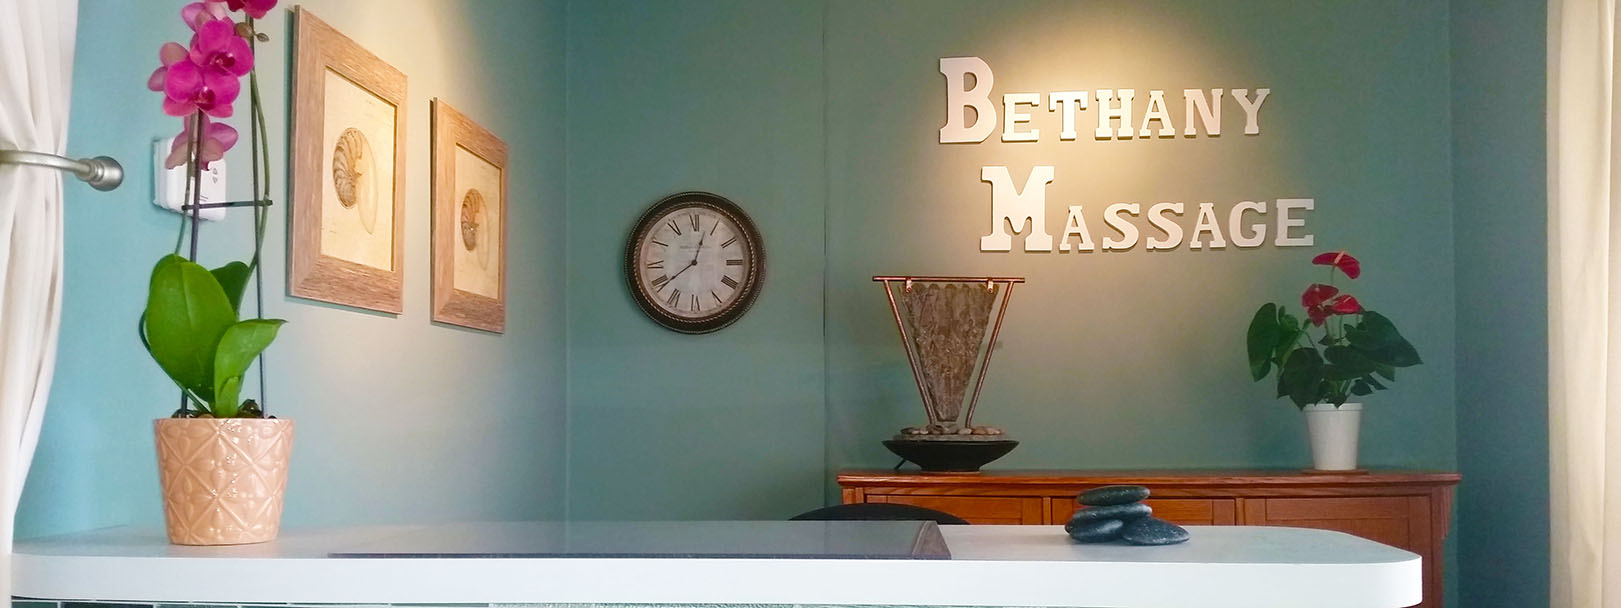 Bethany Beach Massage